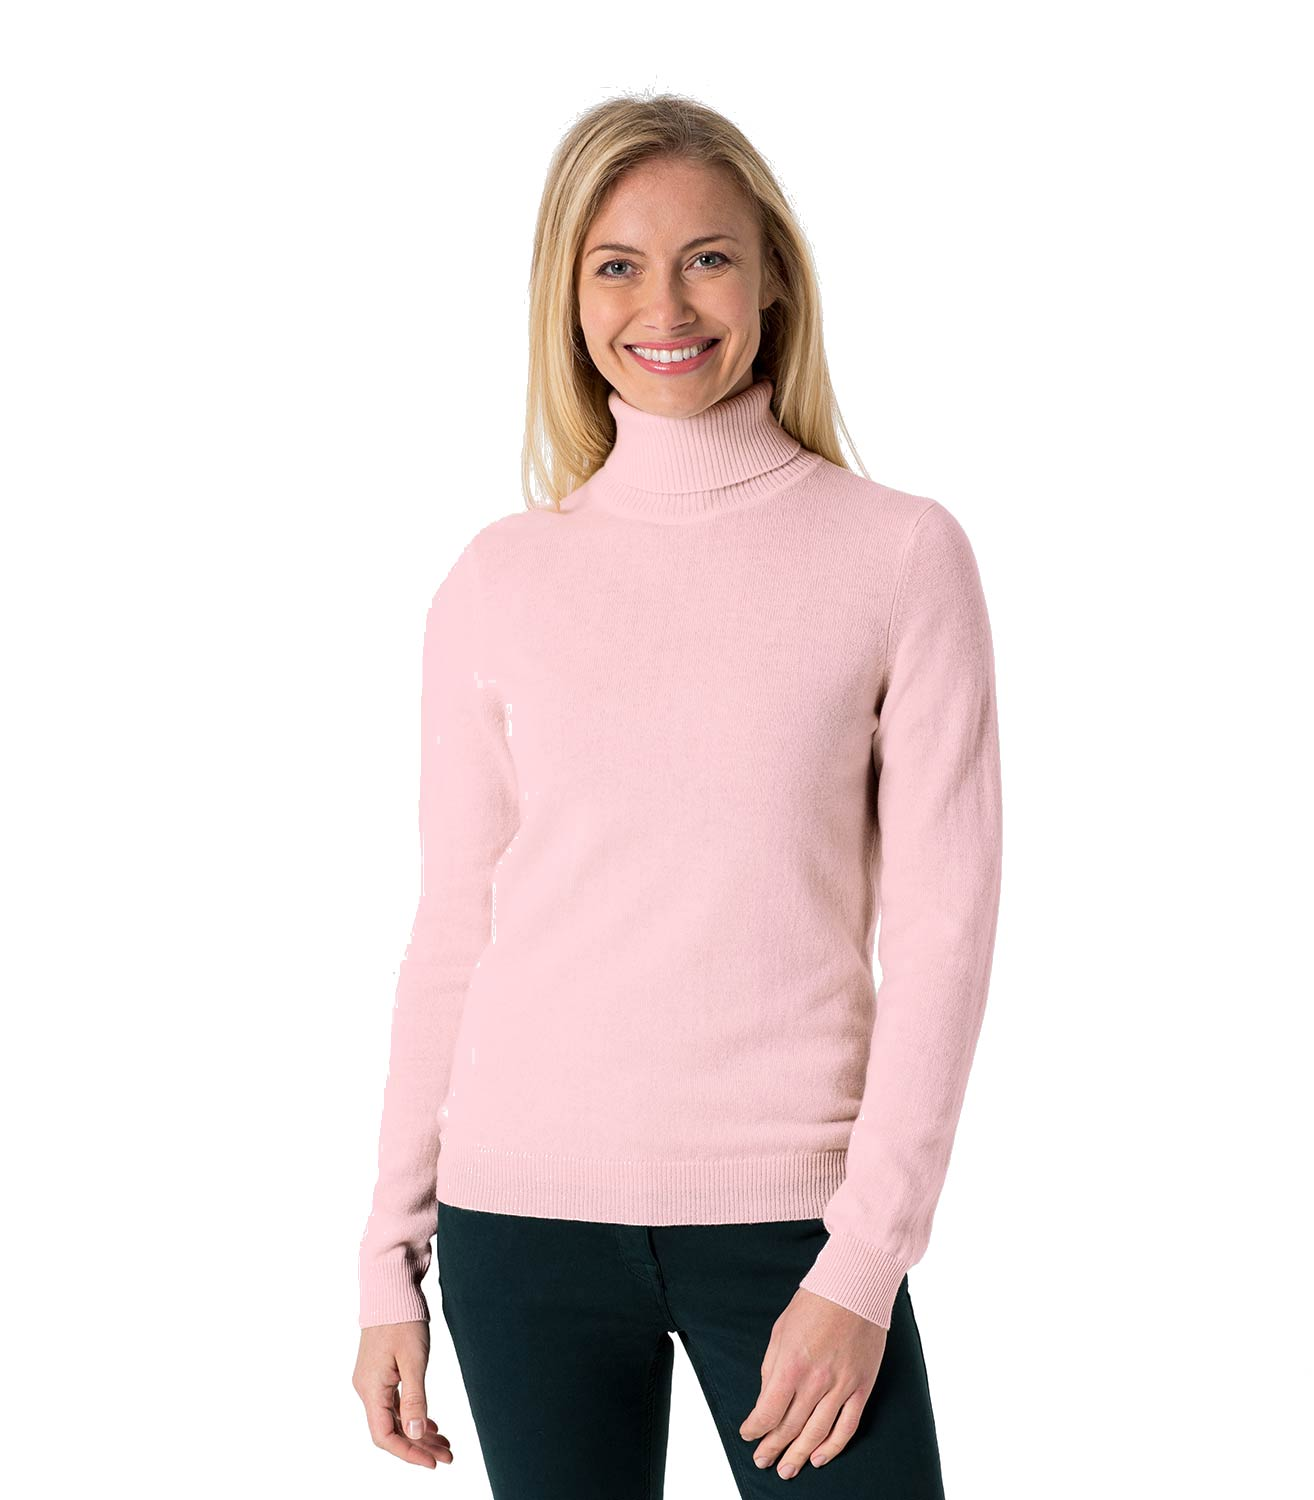 Polo neck sweaters for women are a versatile fashion item that works well in a variety of outfits. The classic retro look is to match a black polo neck with tight pants and flat shoes, but polo neck sweaters for women can also combine well with pencil skirts for a chic and sophisticated ensemble.